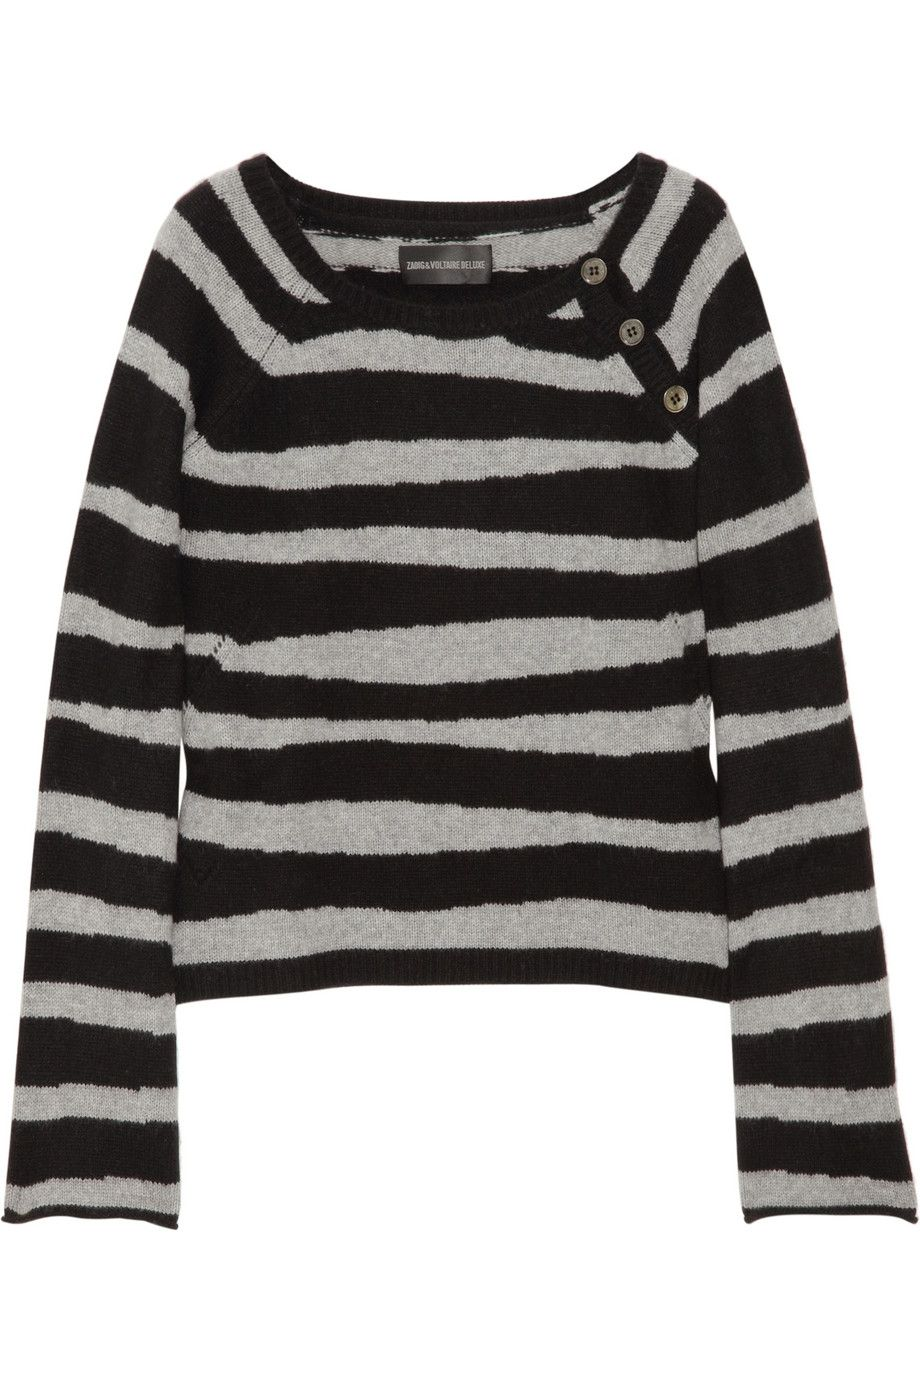 Zadig & Voltaire Reglis striped cashmere sweater - 30% Off Now at ...